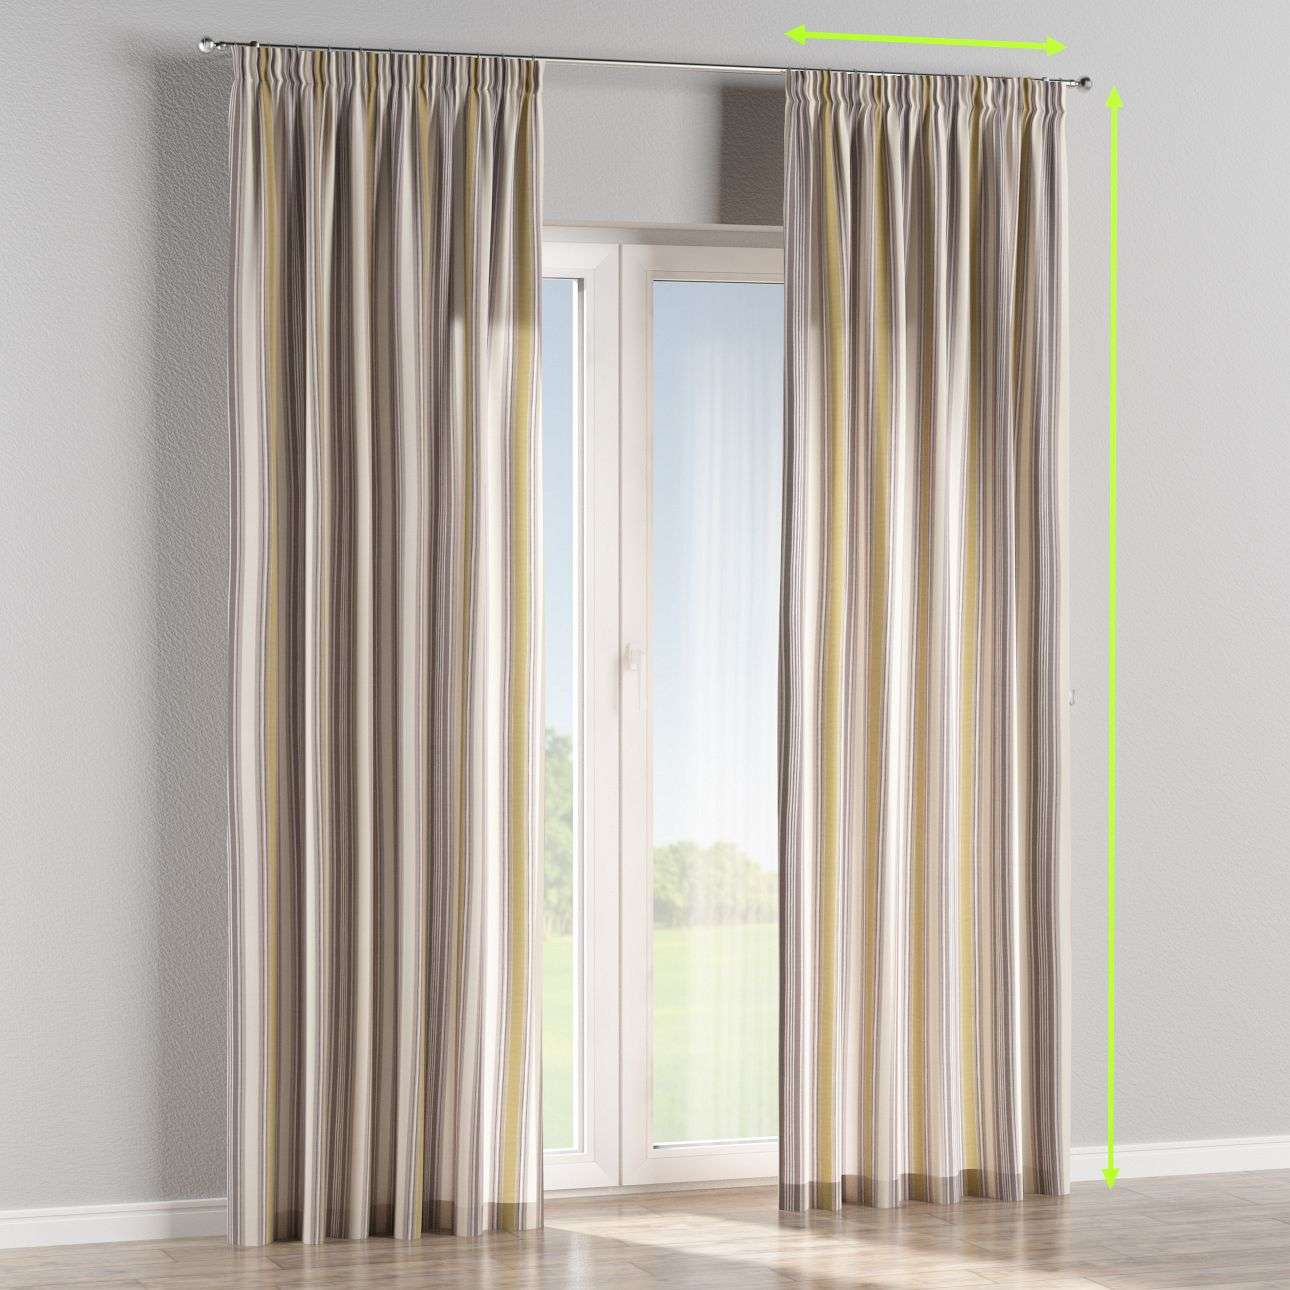 Pencil pleat lined curtains in collection Londres, fabric: 122-06